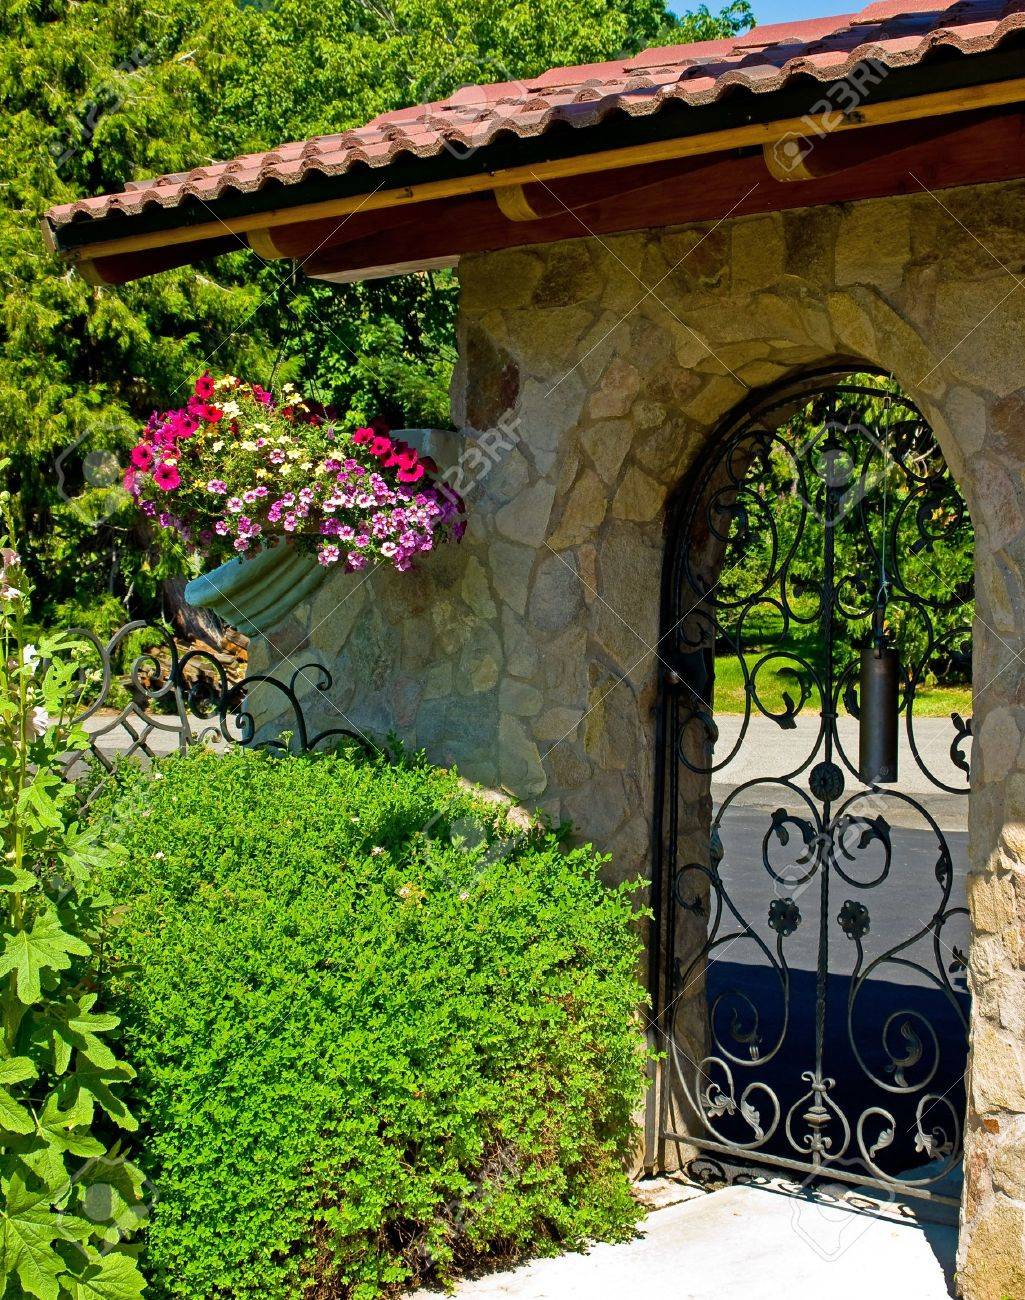 Iron garden gate - Garden Gate Wrought Iron Garden Gate In A Fancy Garden